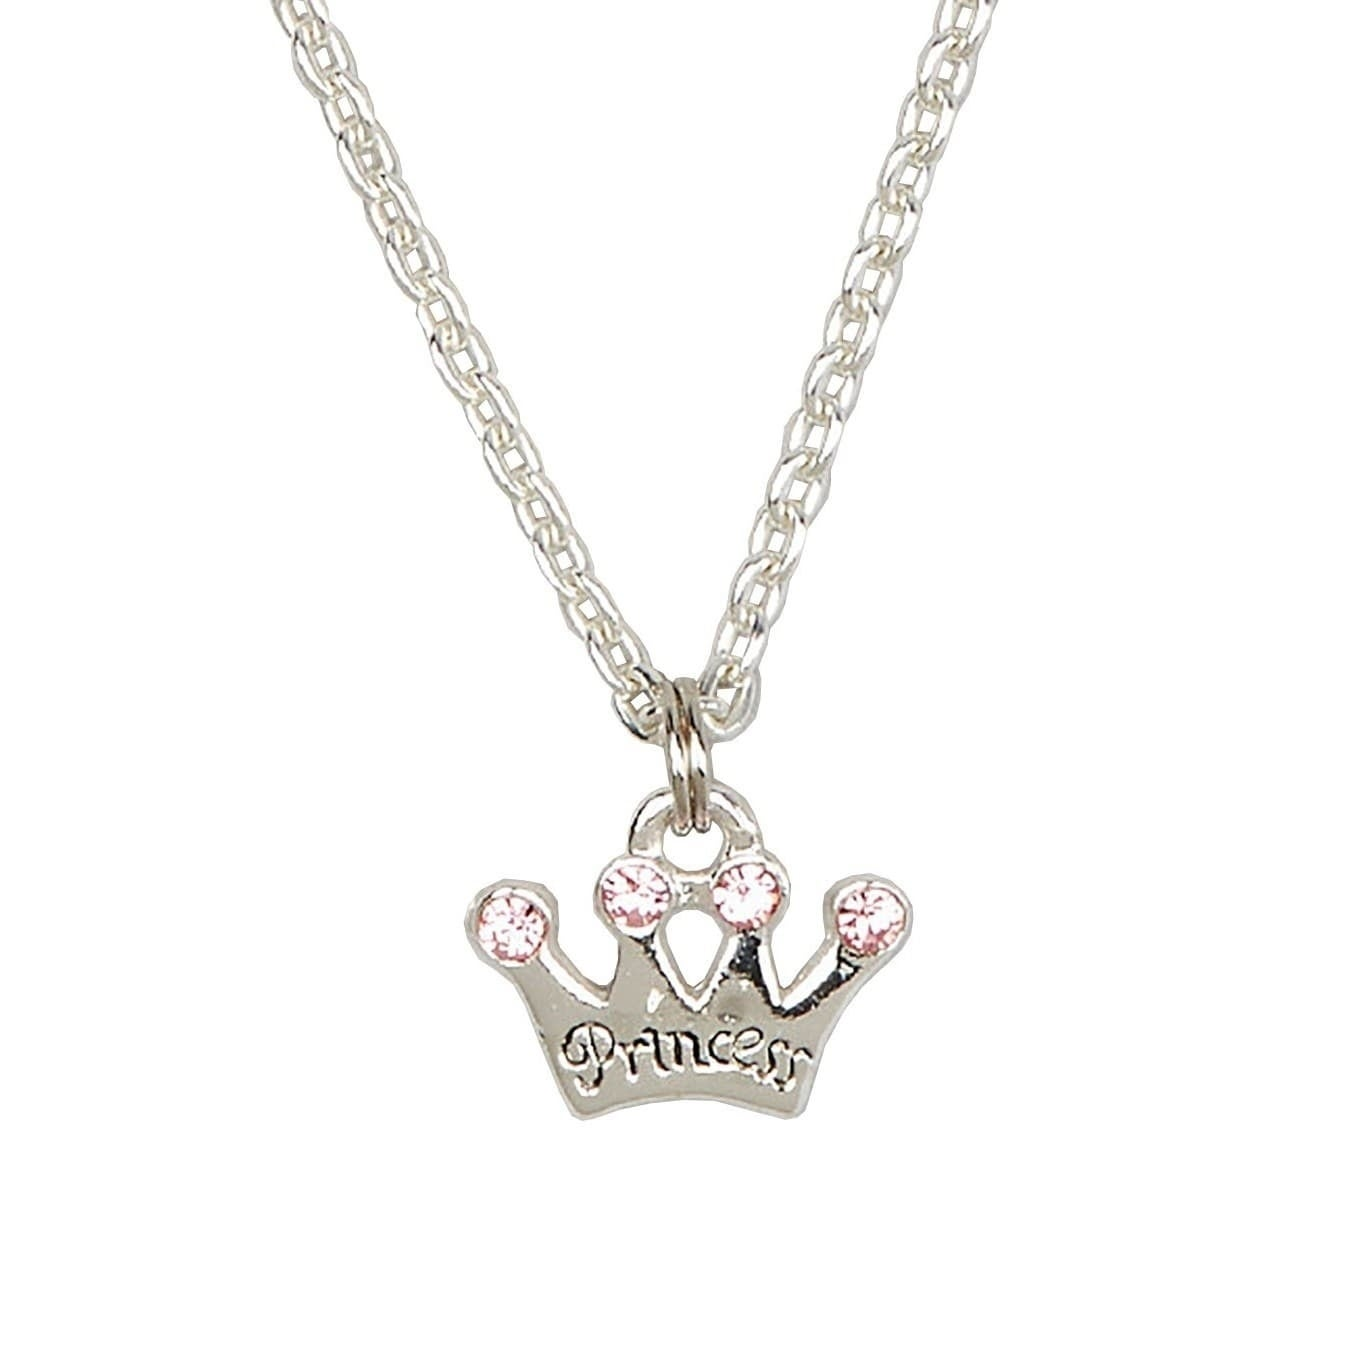 Crystal Lovet Devil Heart Accent  Charm Chain Pendant Necklace Womens Jewellery